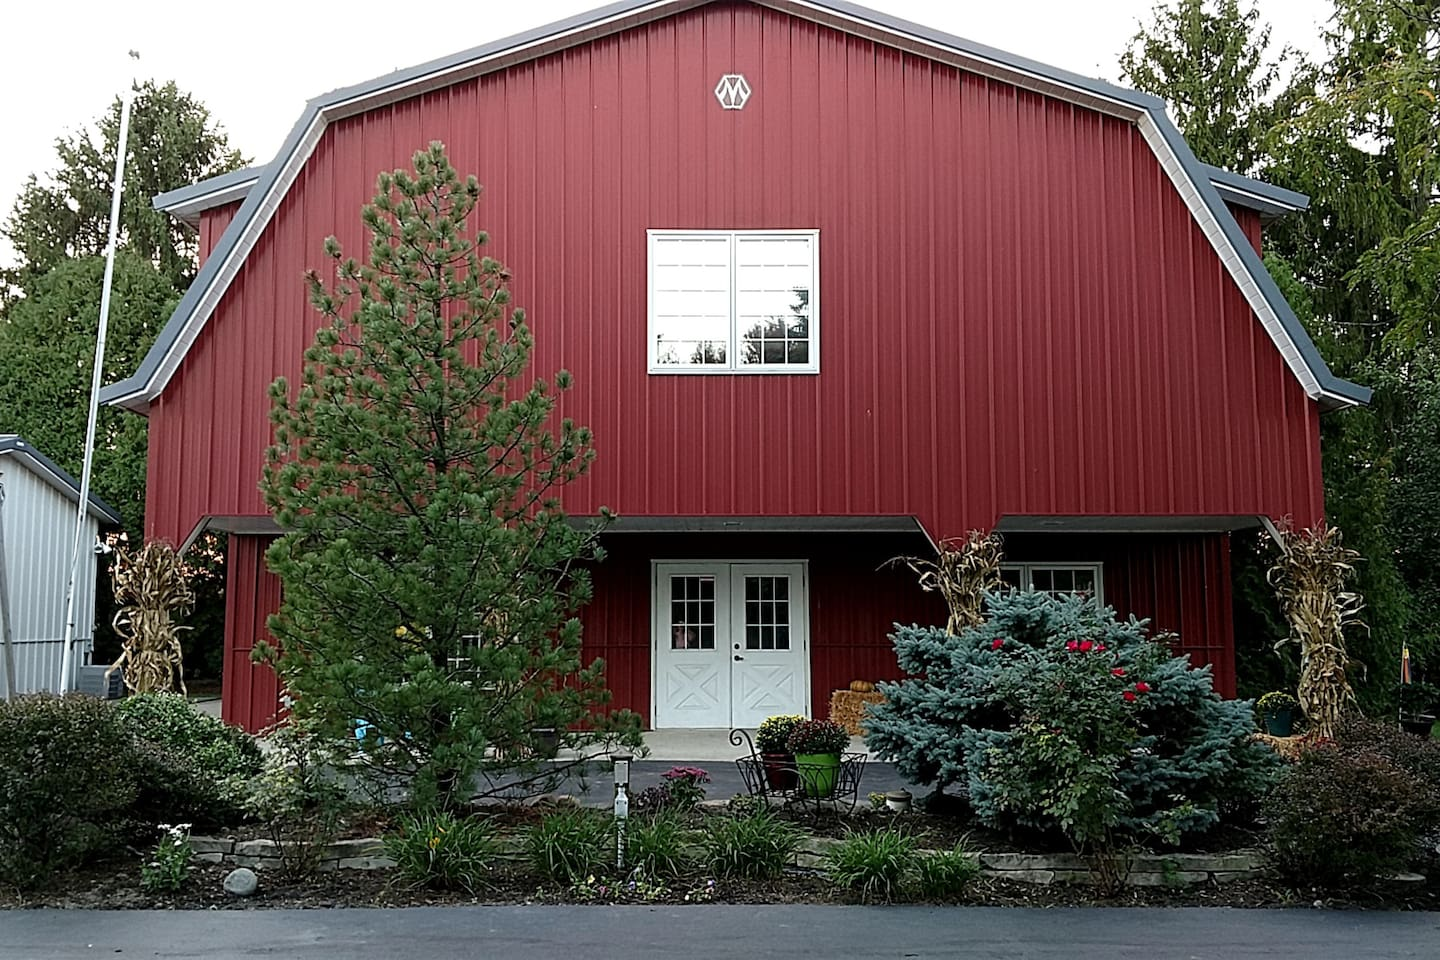 Guests stay in our modern Red Barn. Barn has heat and air-conditioning, half bath, full kitchen, 1 futon, 1 full bed, desk, and open floor plan.  Red Barn is not attached to main house (where we live).